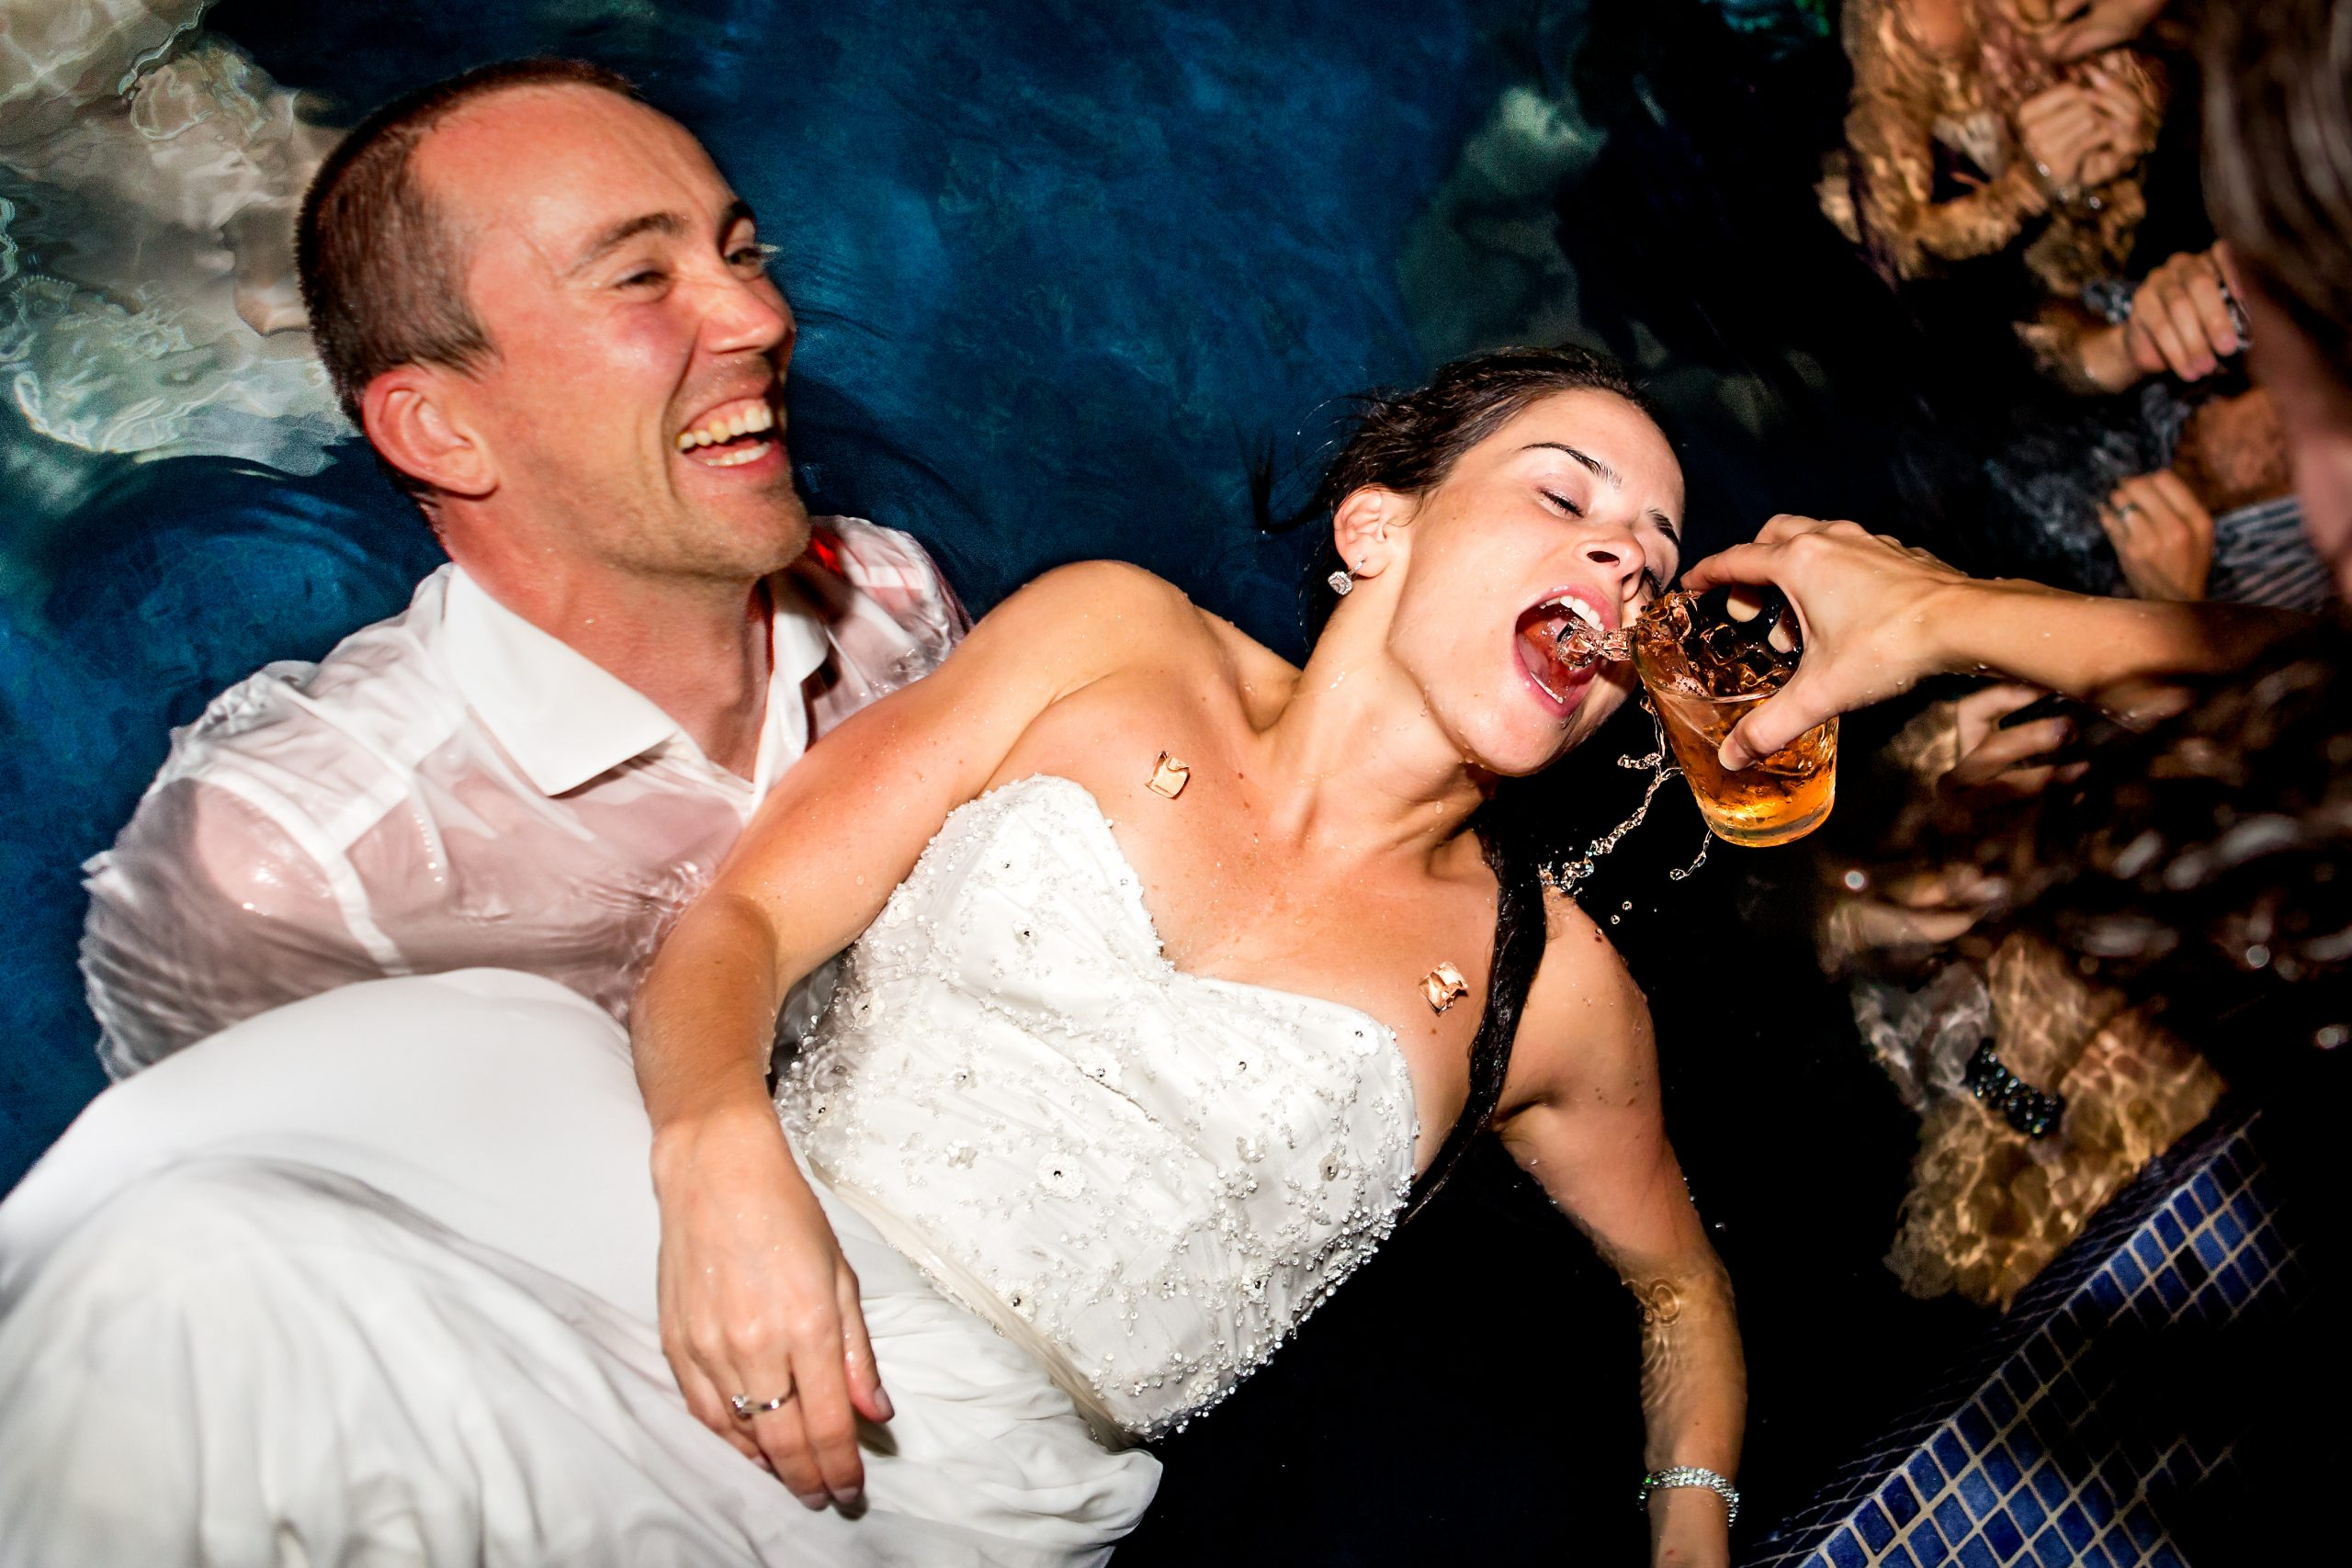 Bride has drink poured into her mouth as she is held by a man in a pool